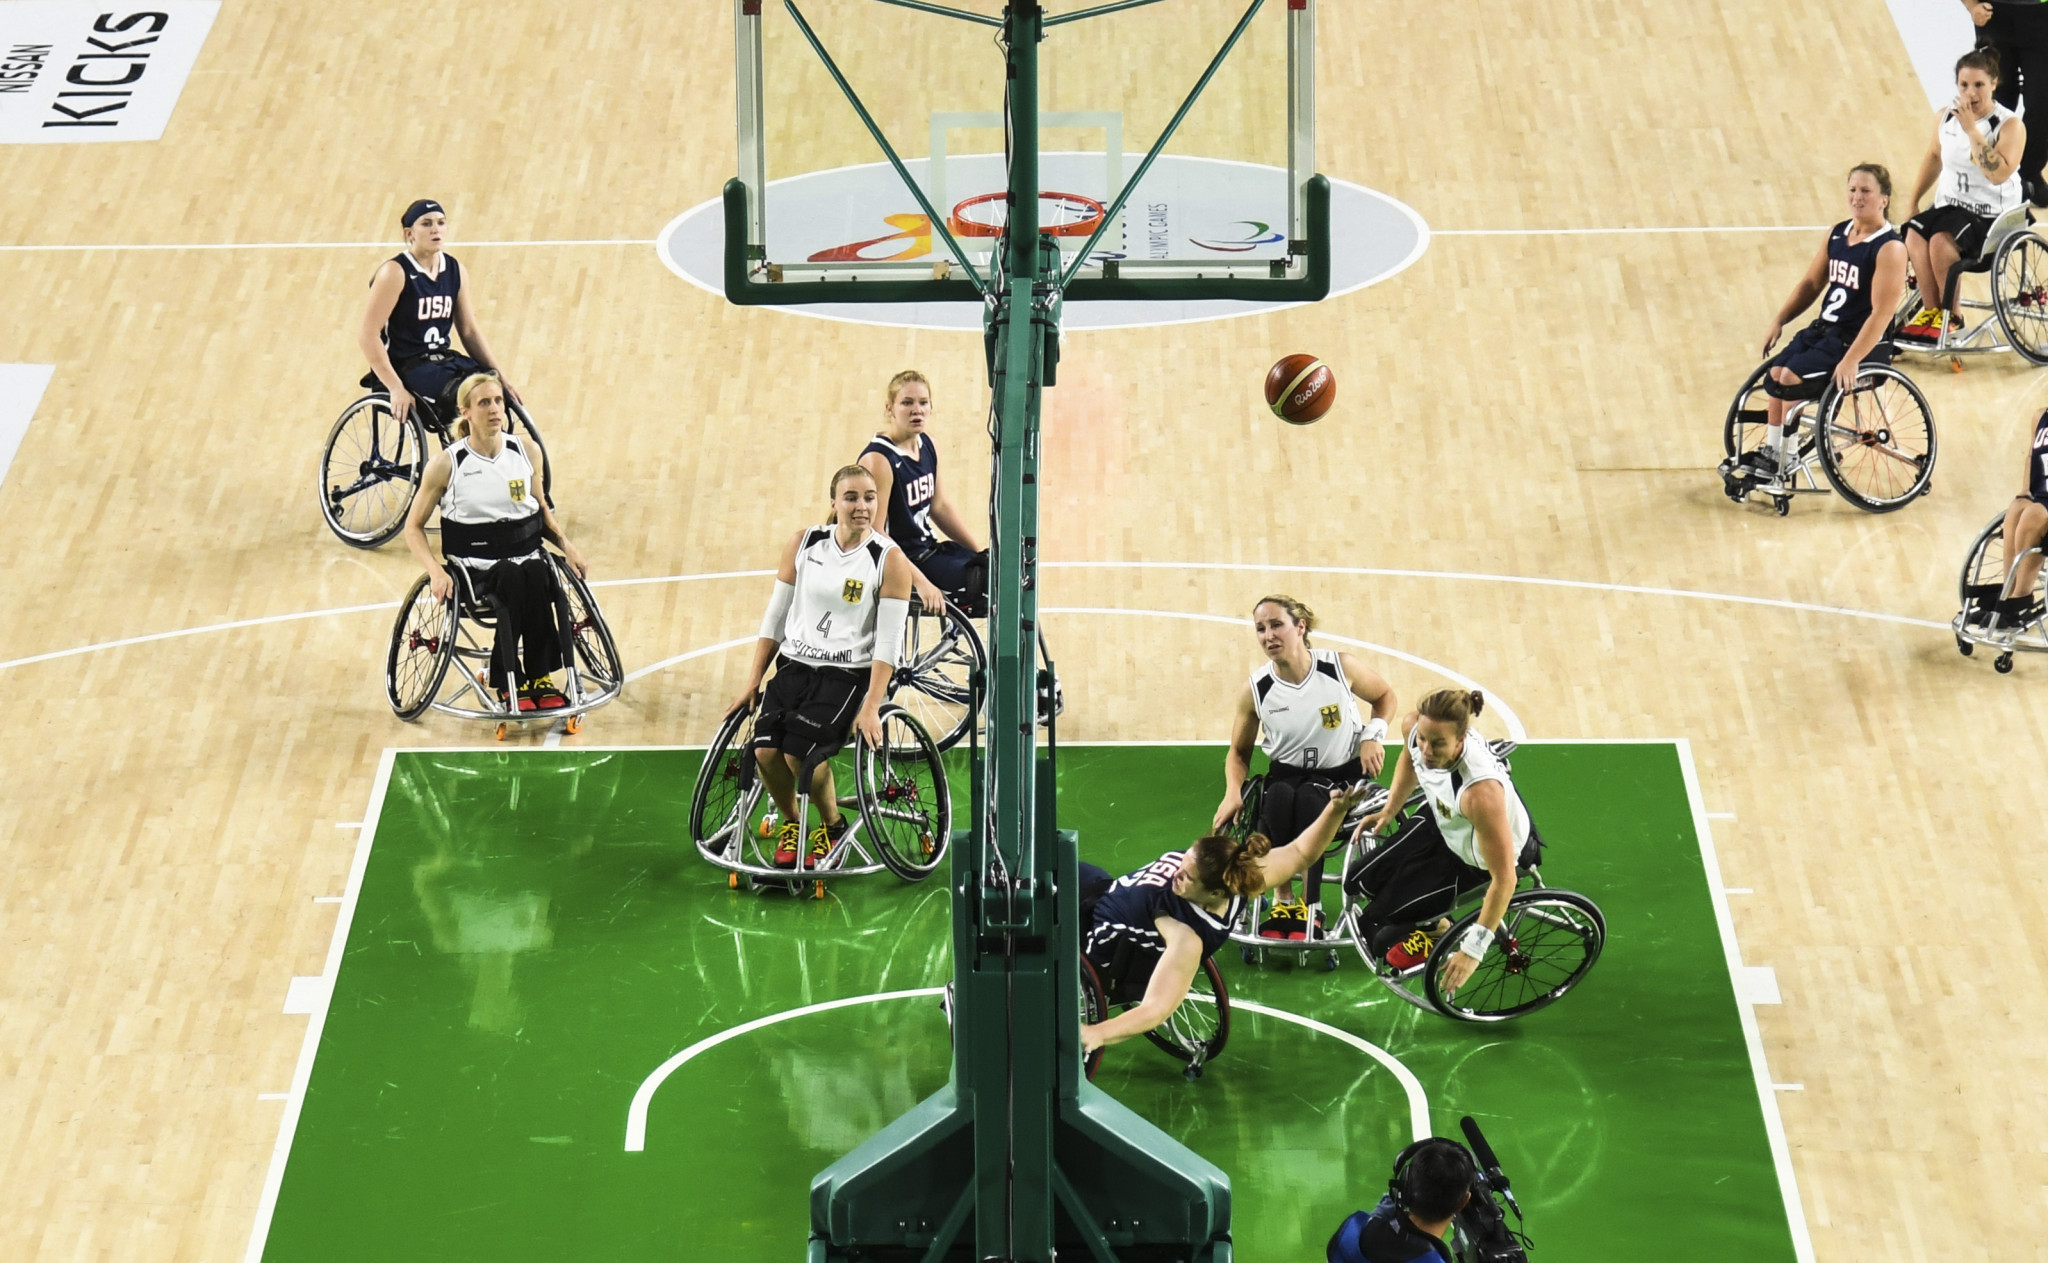 Wheelchair basketball was recently added to the British Universities and Colleges Sport programme ©Getty Images